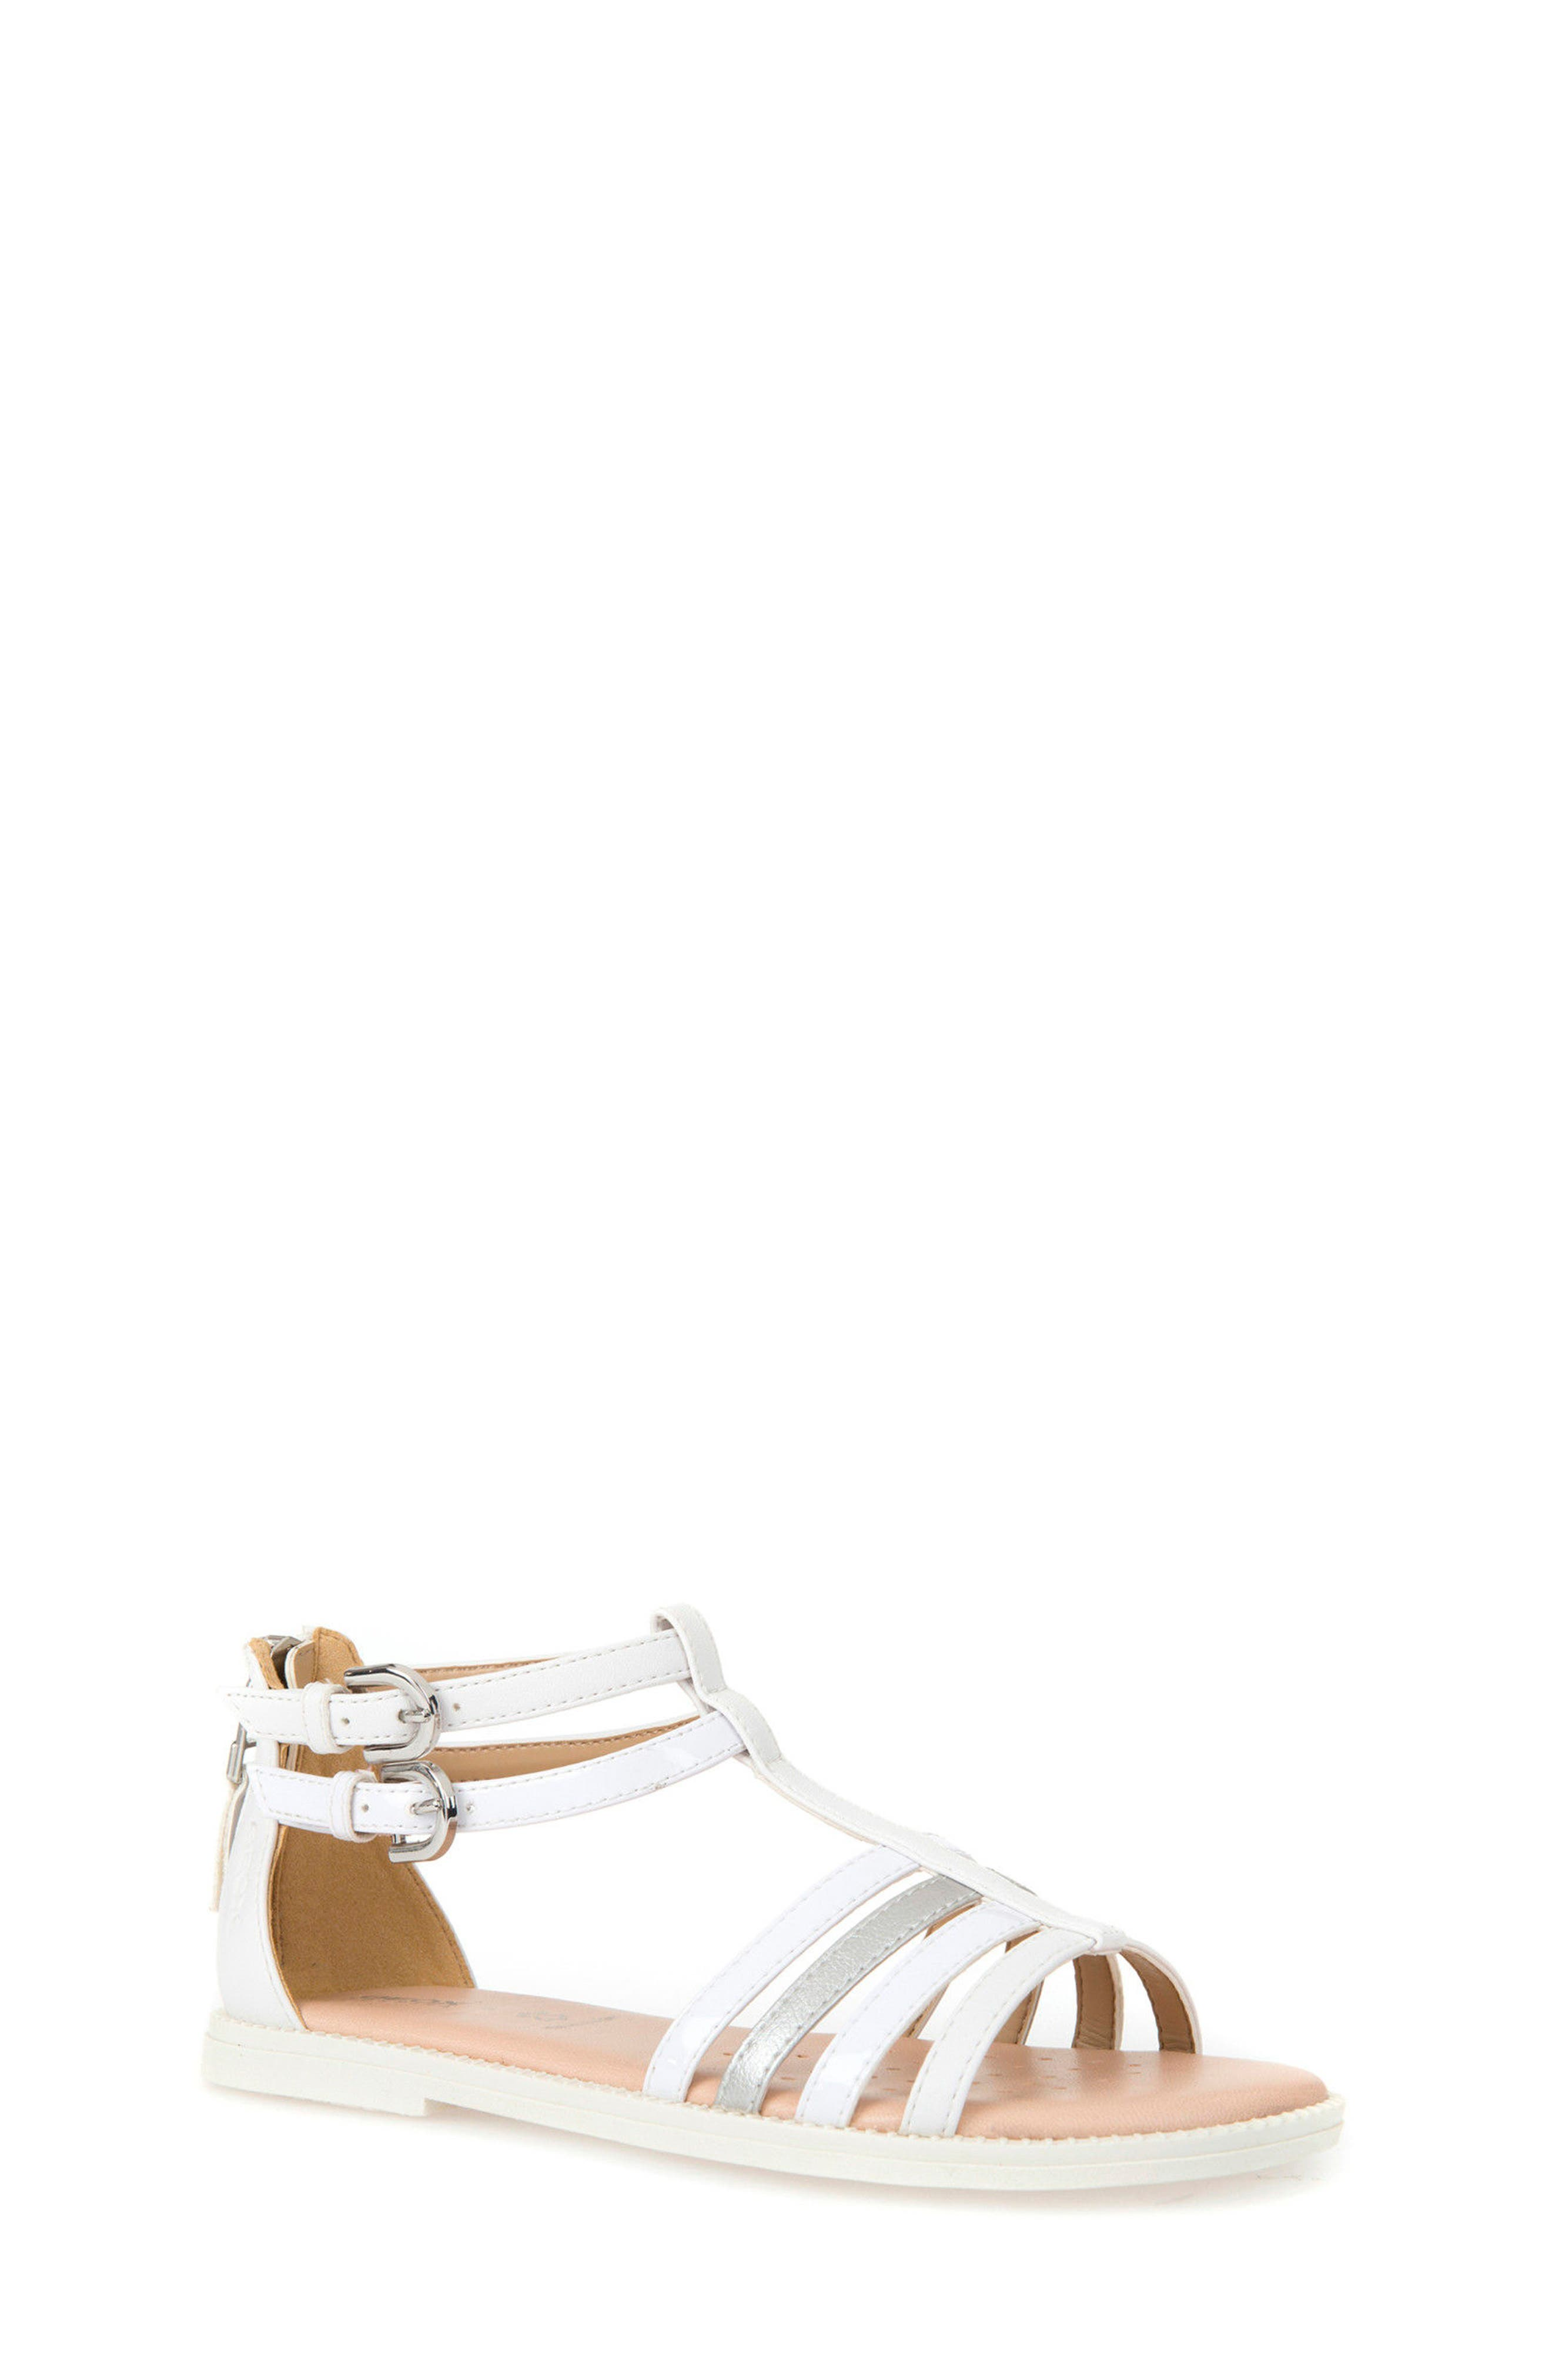 Karly Sandal,                         Main,                         color, WHITE